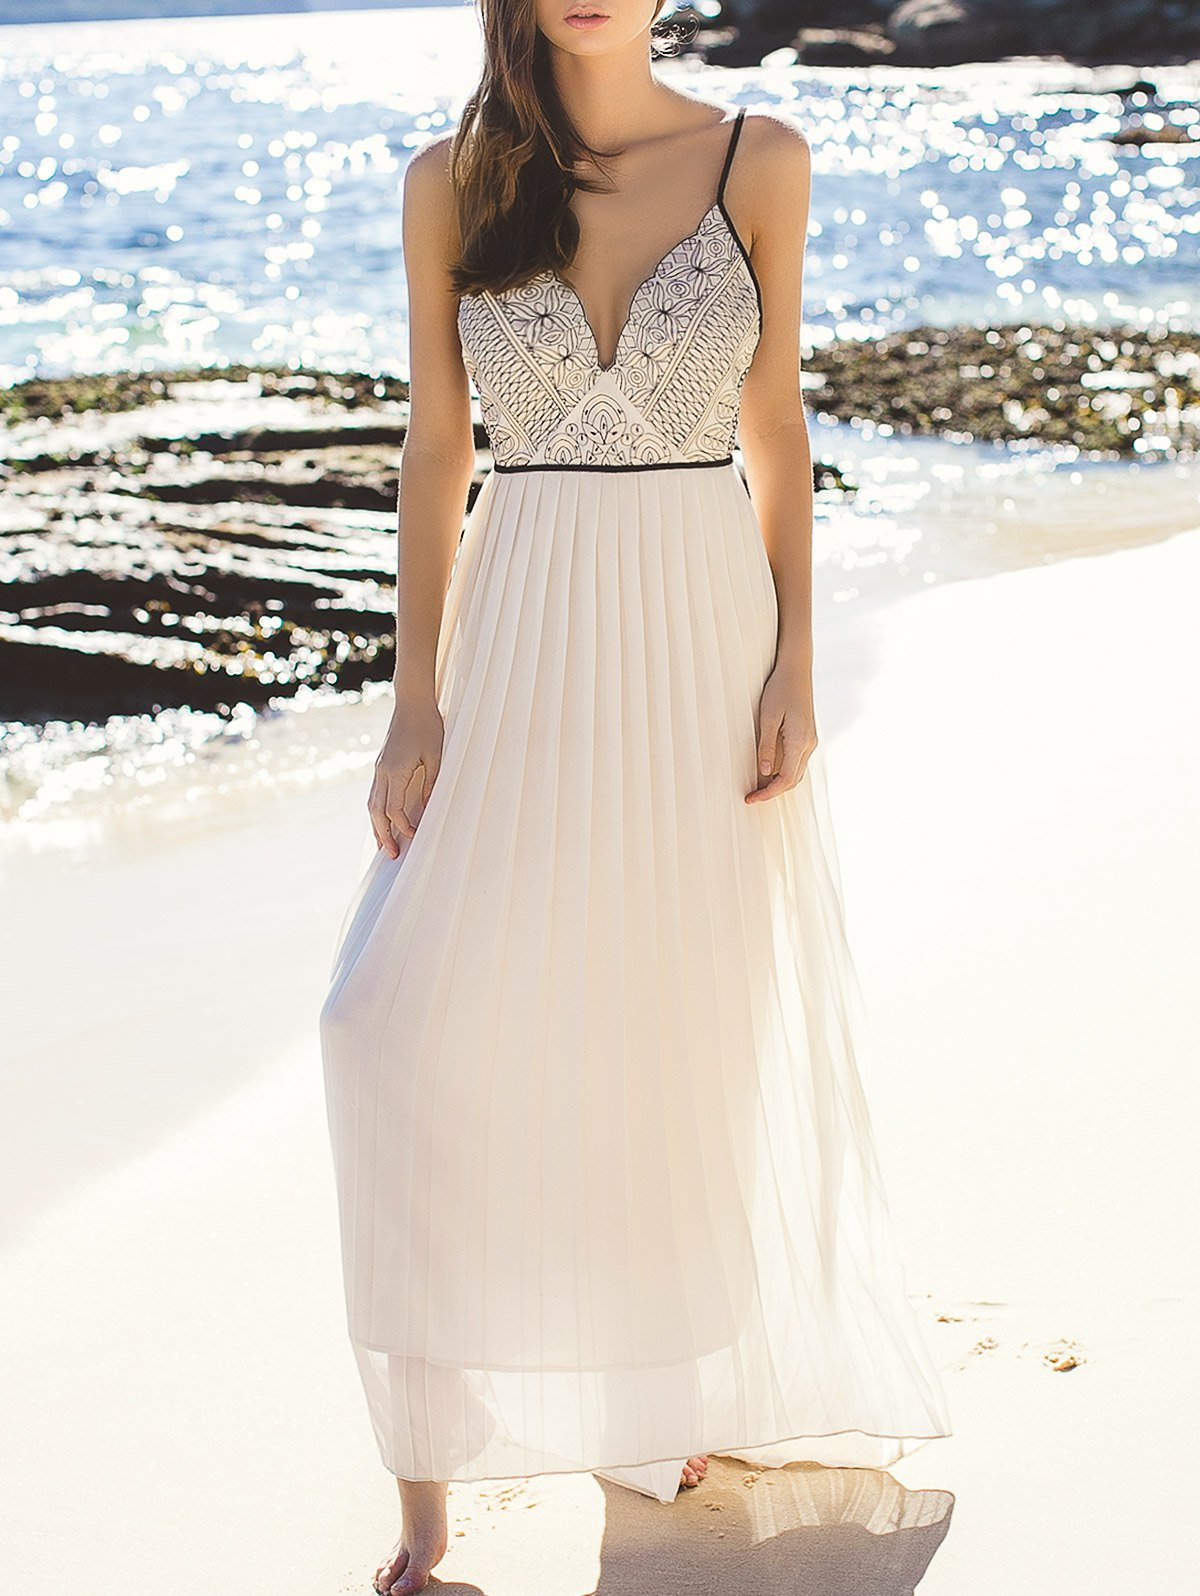 Elegant Embroidered Pleated Chiffon Flowing Dress